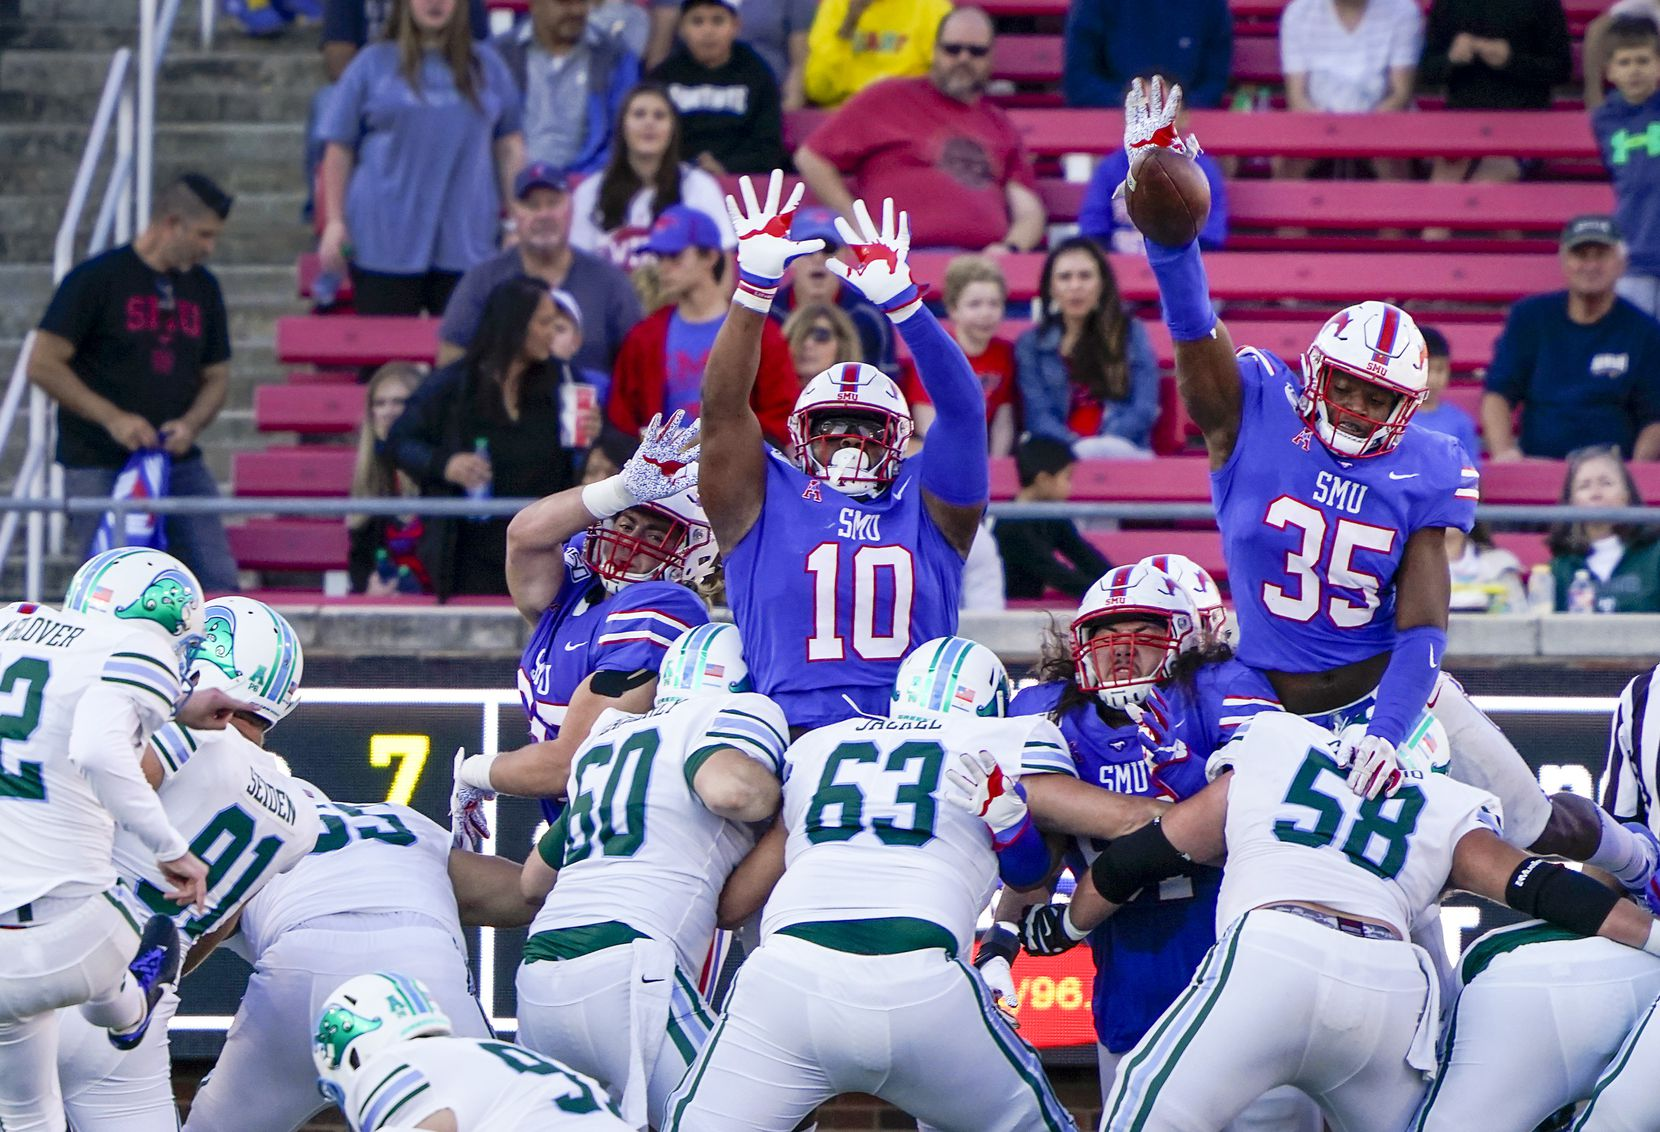 SMU defensive end Delontae Scott (35) blocks a field goal attempt by Tulane place kicker Merek Glover during the first half of an NCAA football game at Ford Stadium on Saturday, Nov. 30, 2019, in Dallas.